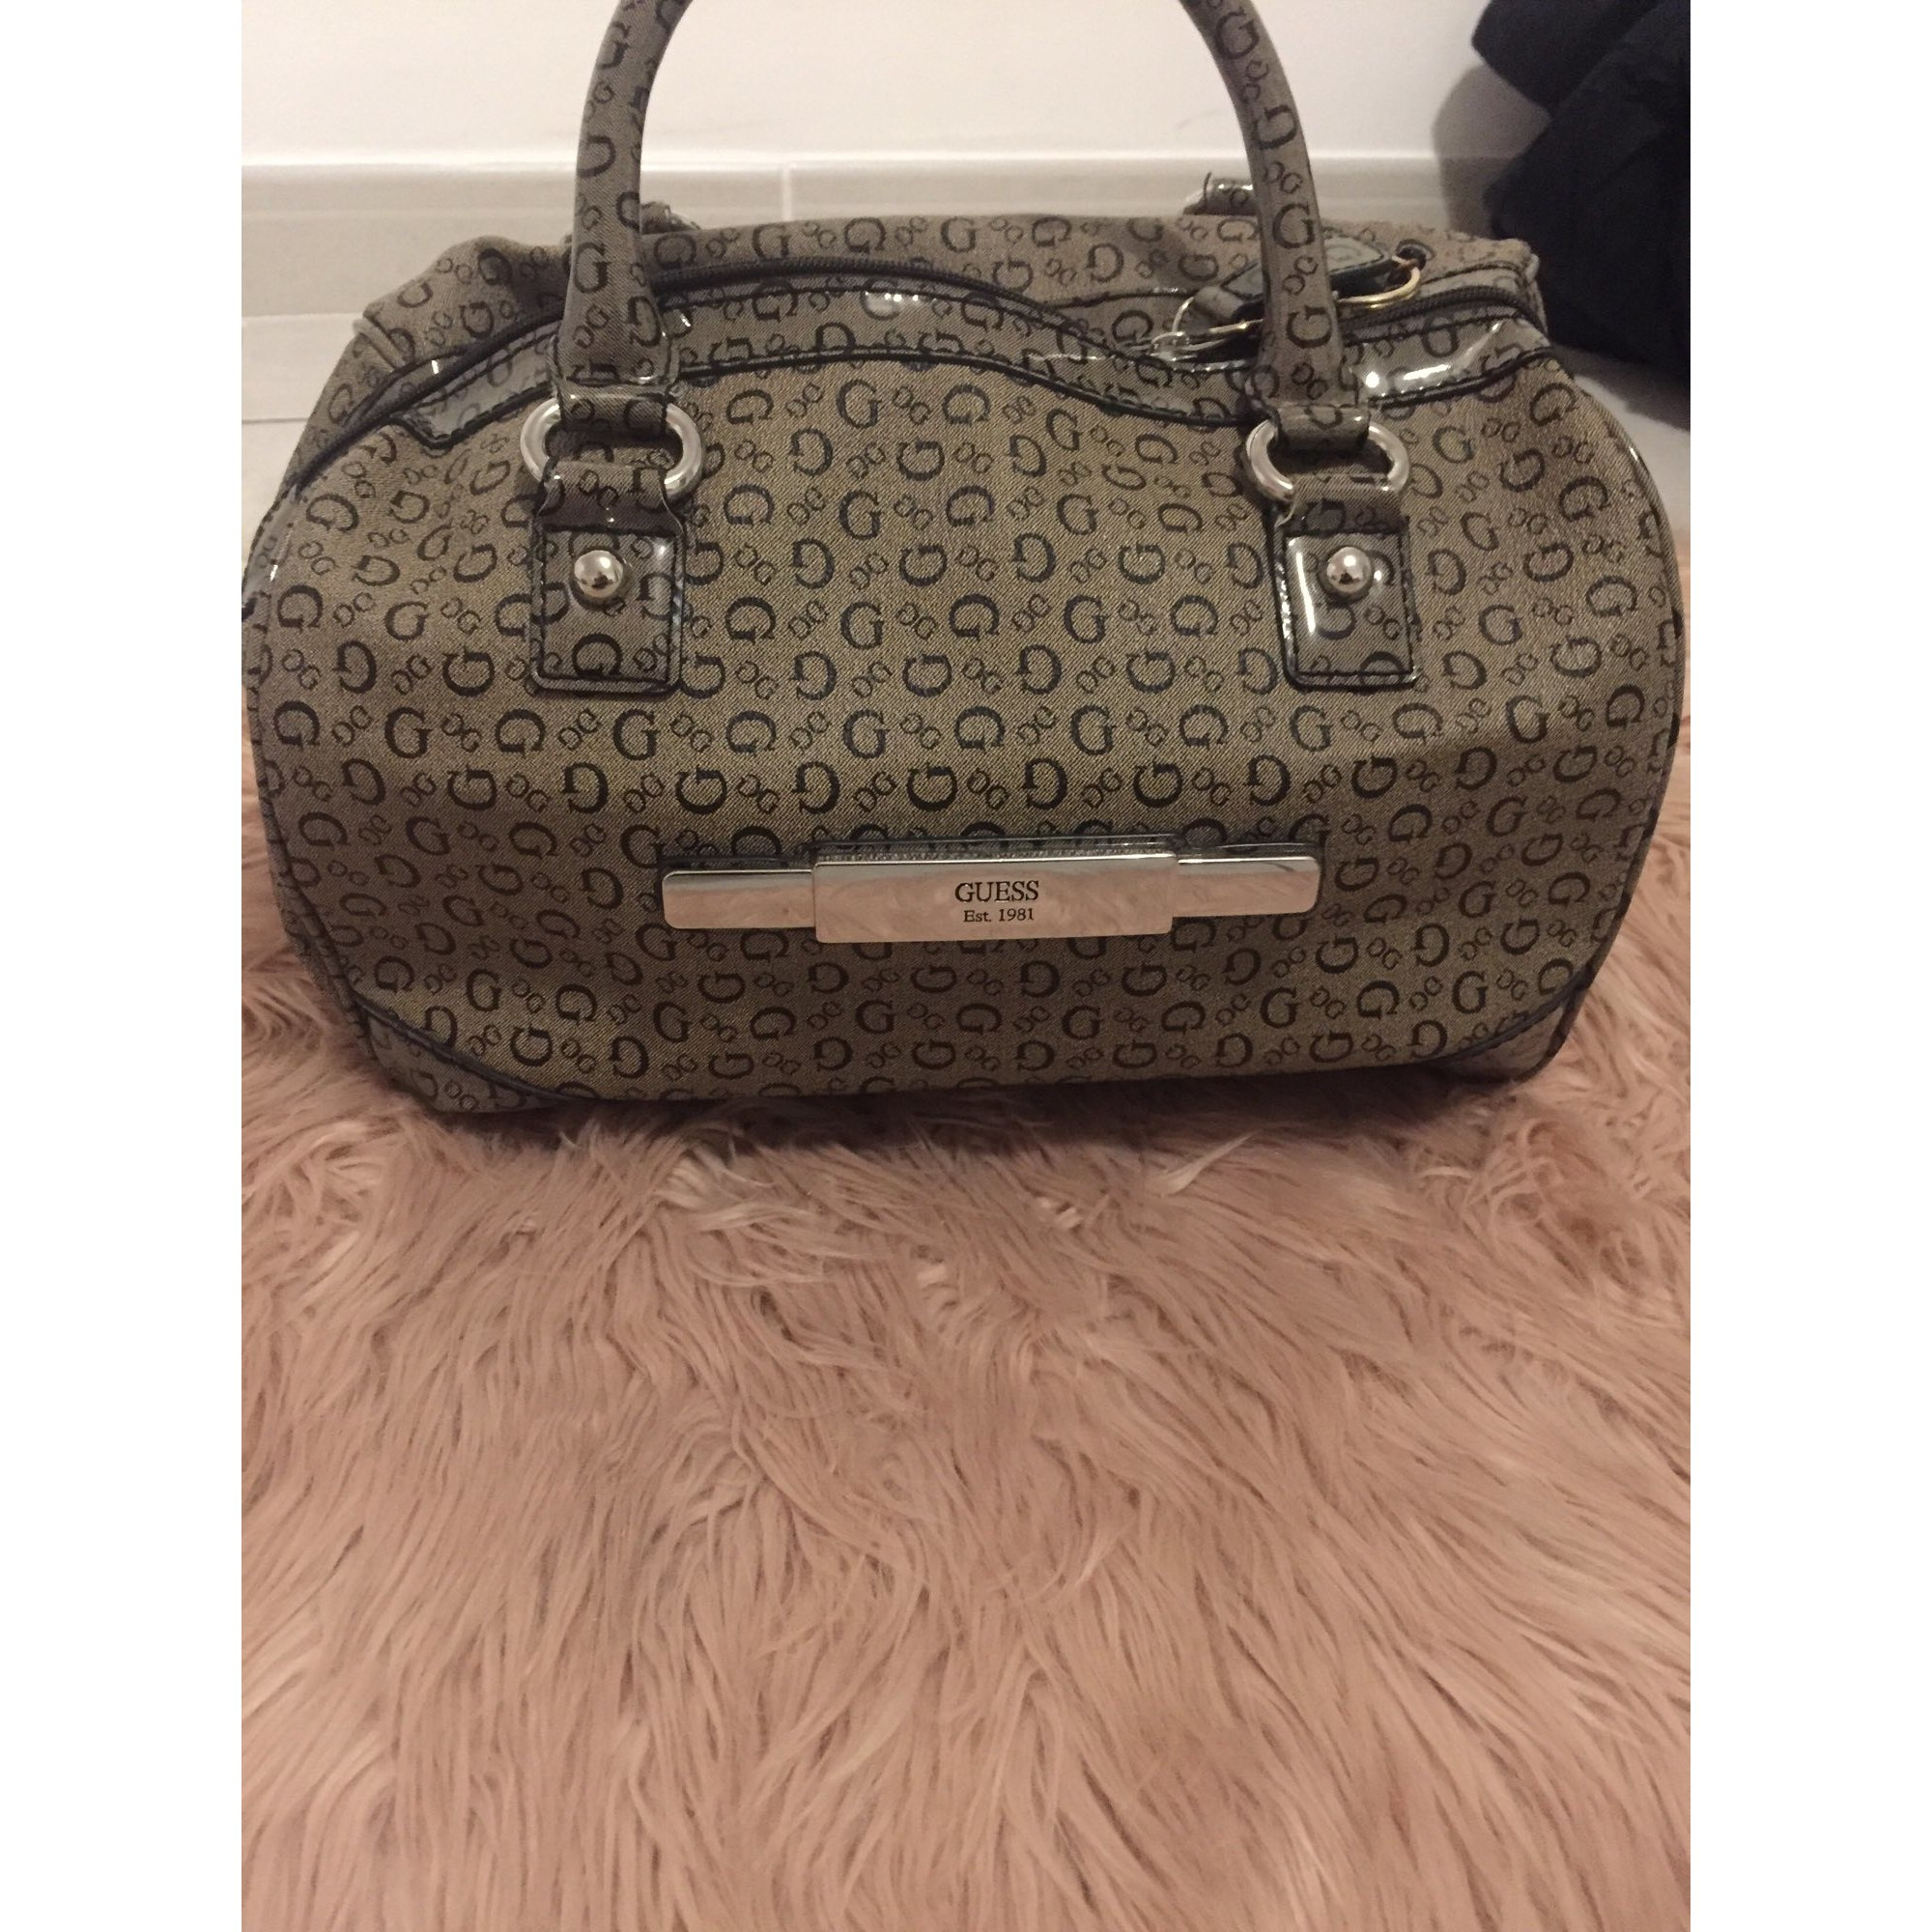 6f048c98ed Sac à main en cuir GUESS marron - 8269847